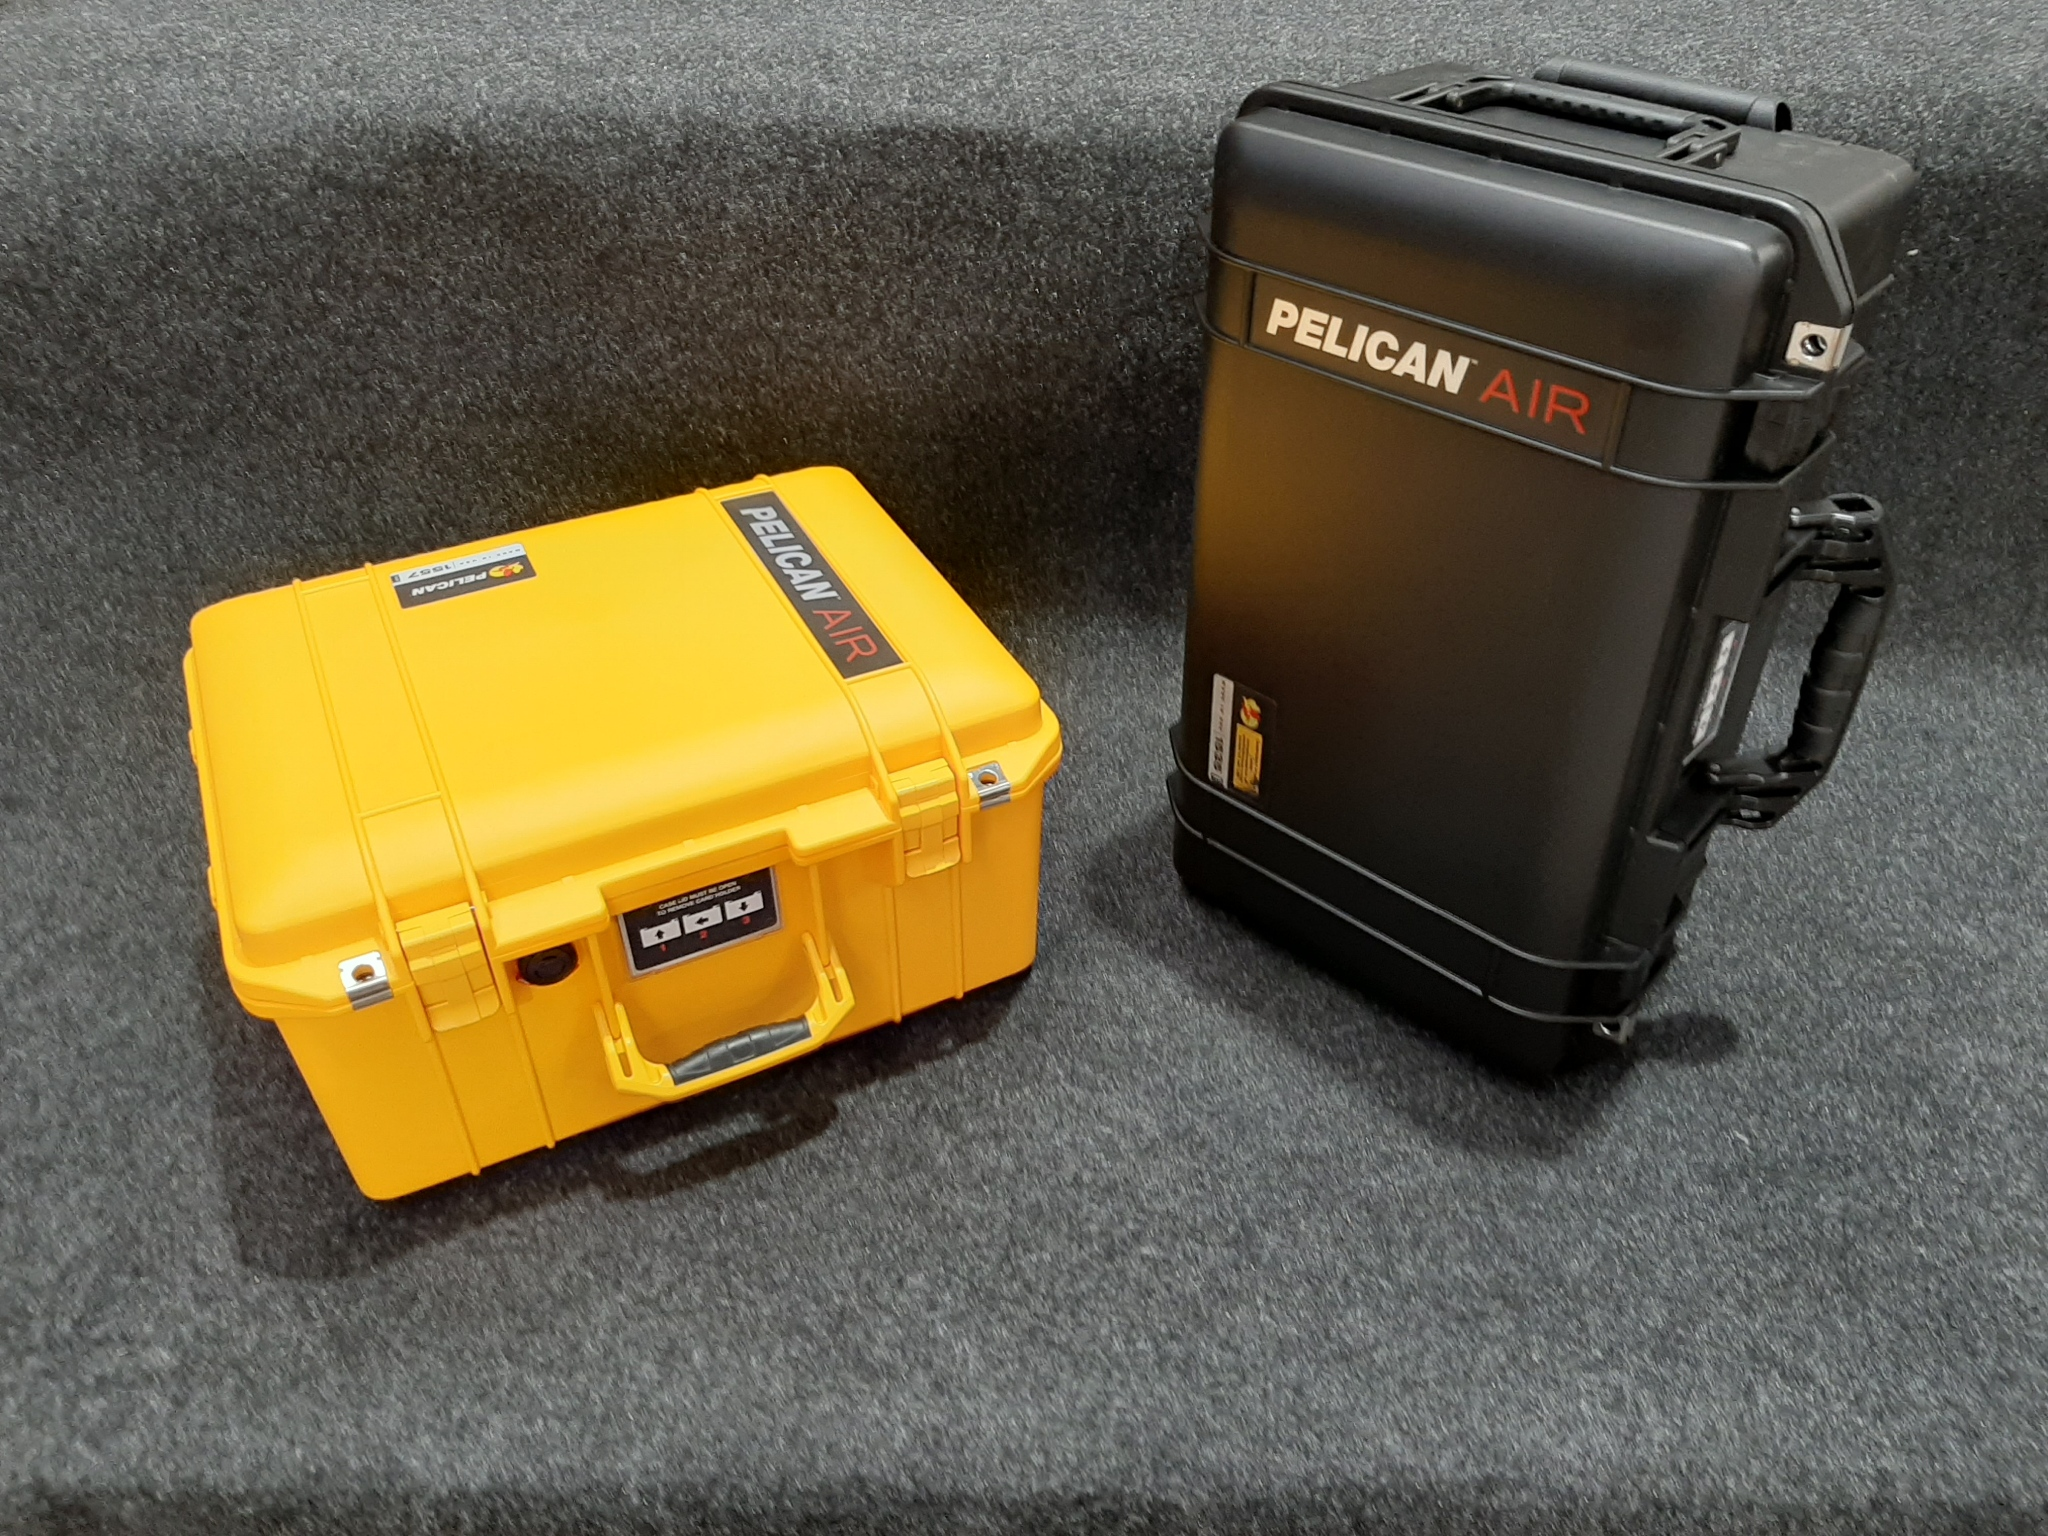 Pelican 1557 and 1535 Air and they Suit the DJI Phantoms_Qld Protective Case